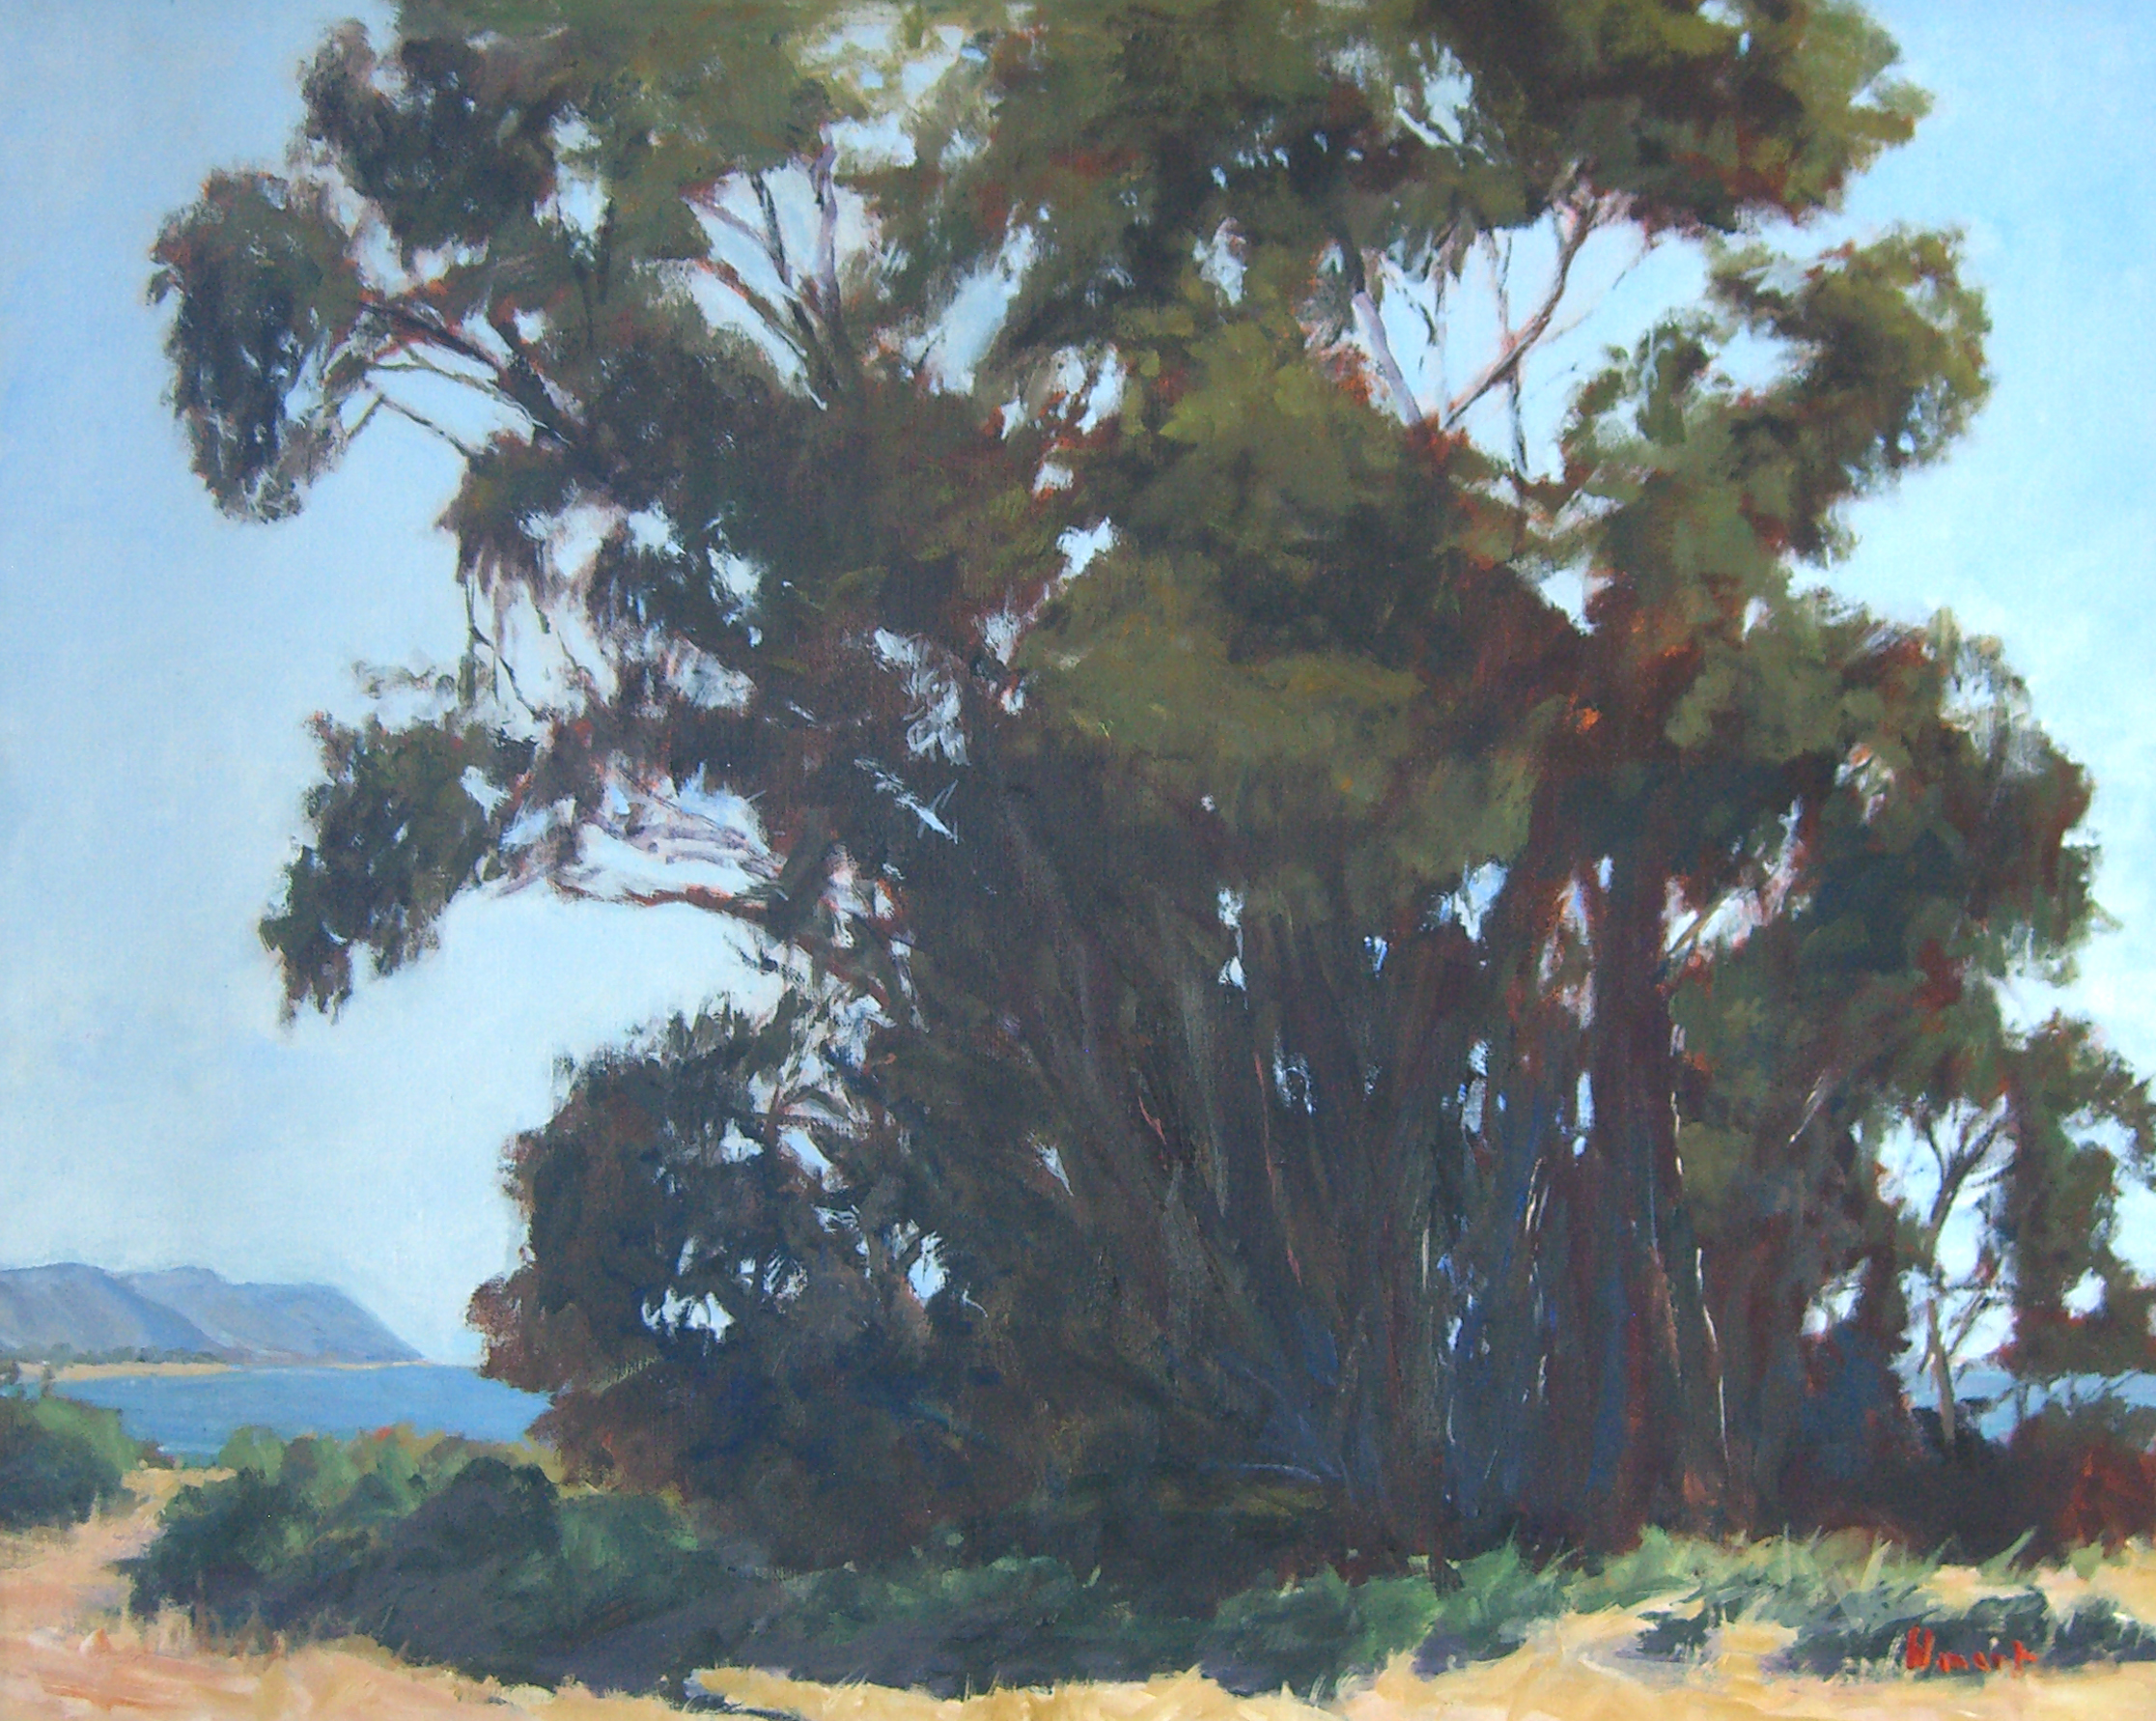 Bluff Eucalyptus, oil, 24x30